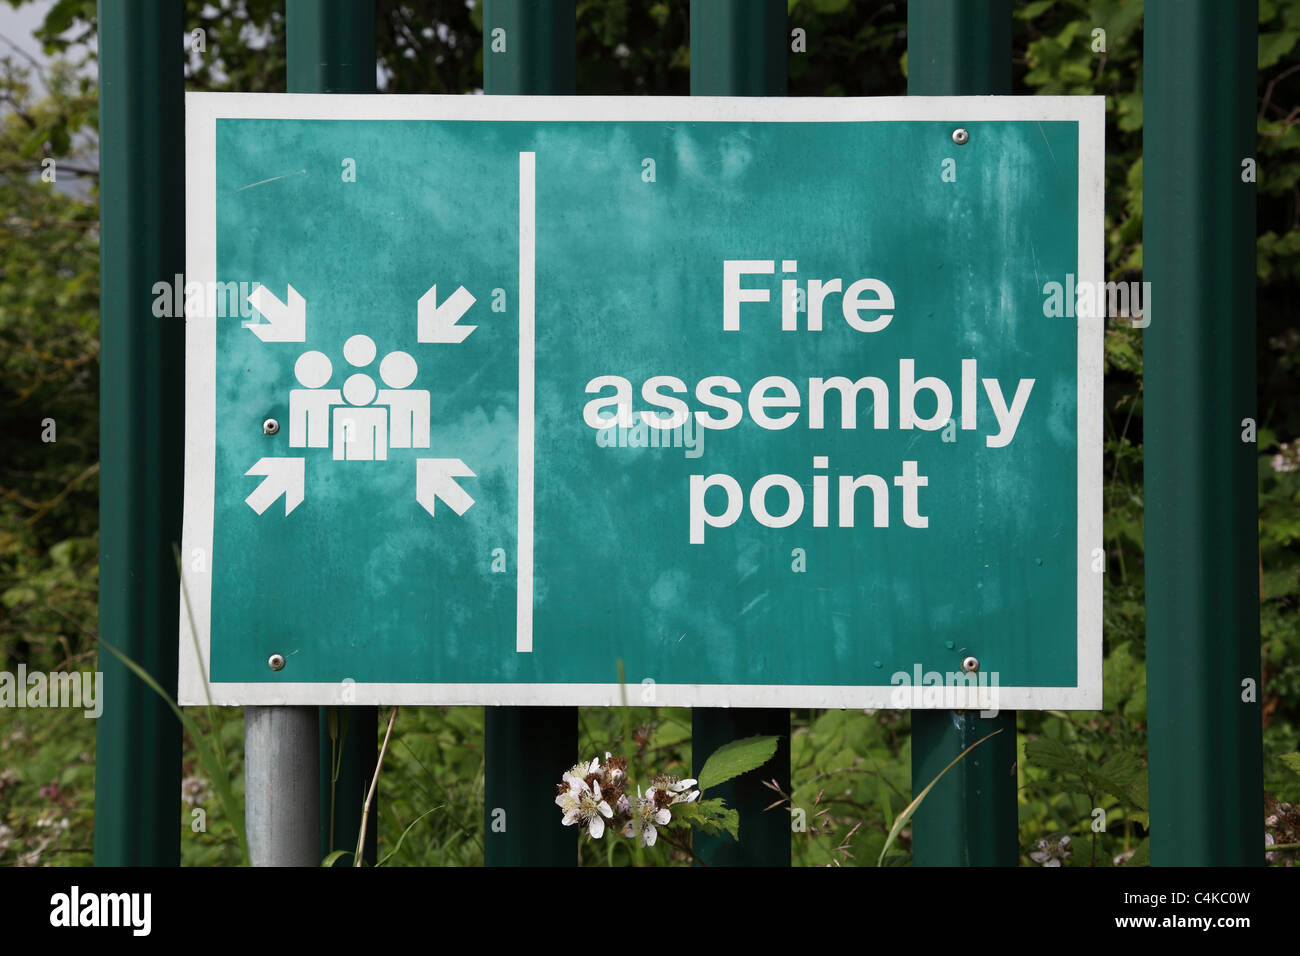 A fire assembly point sign in the U.K. - Stock Image